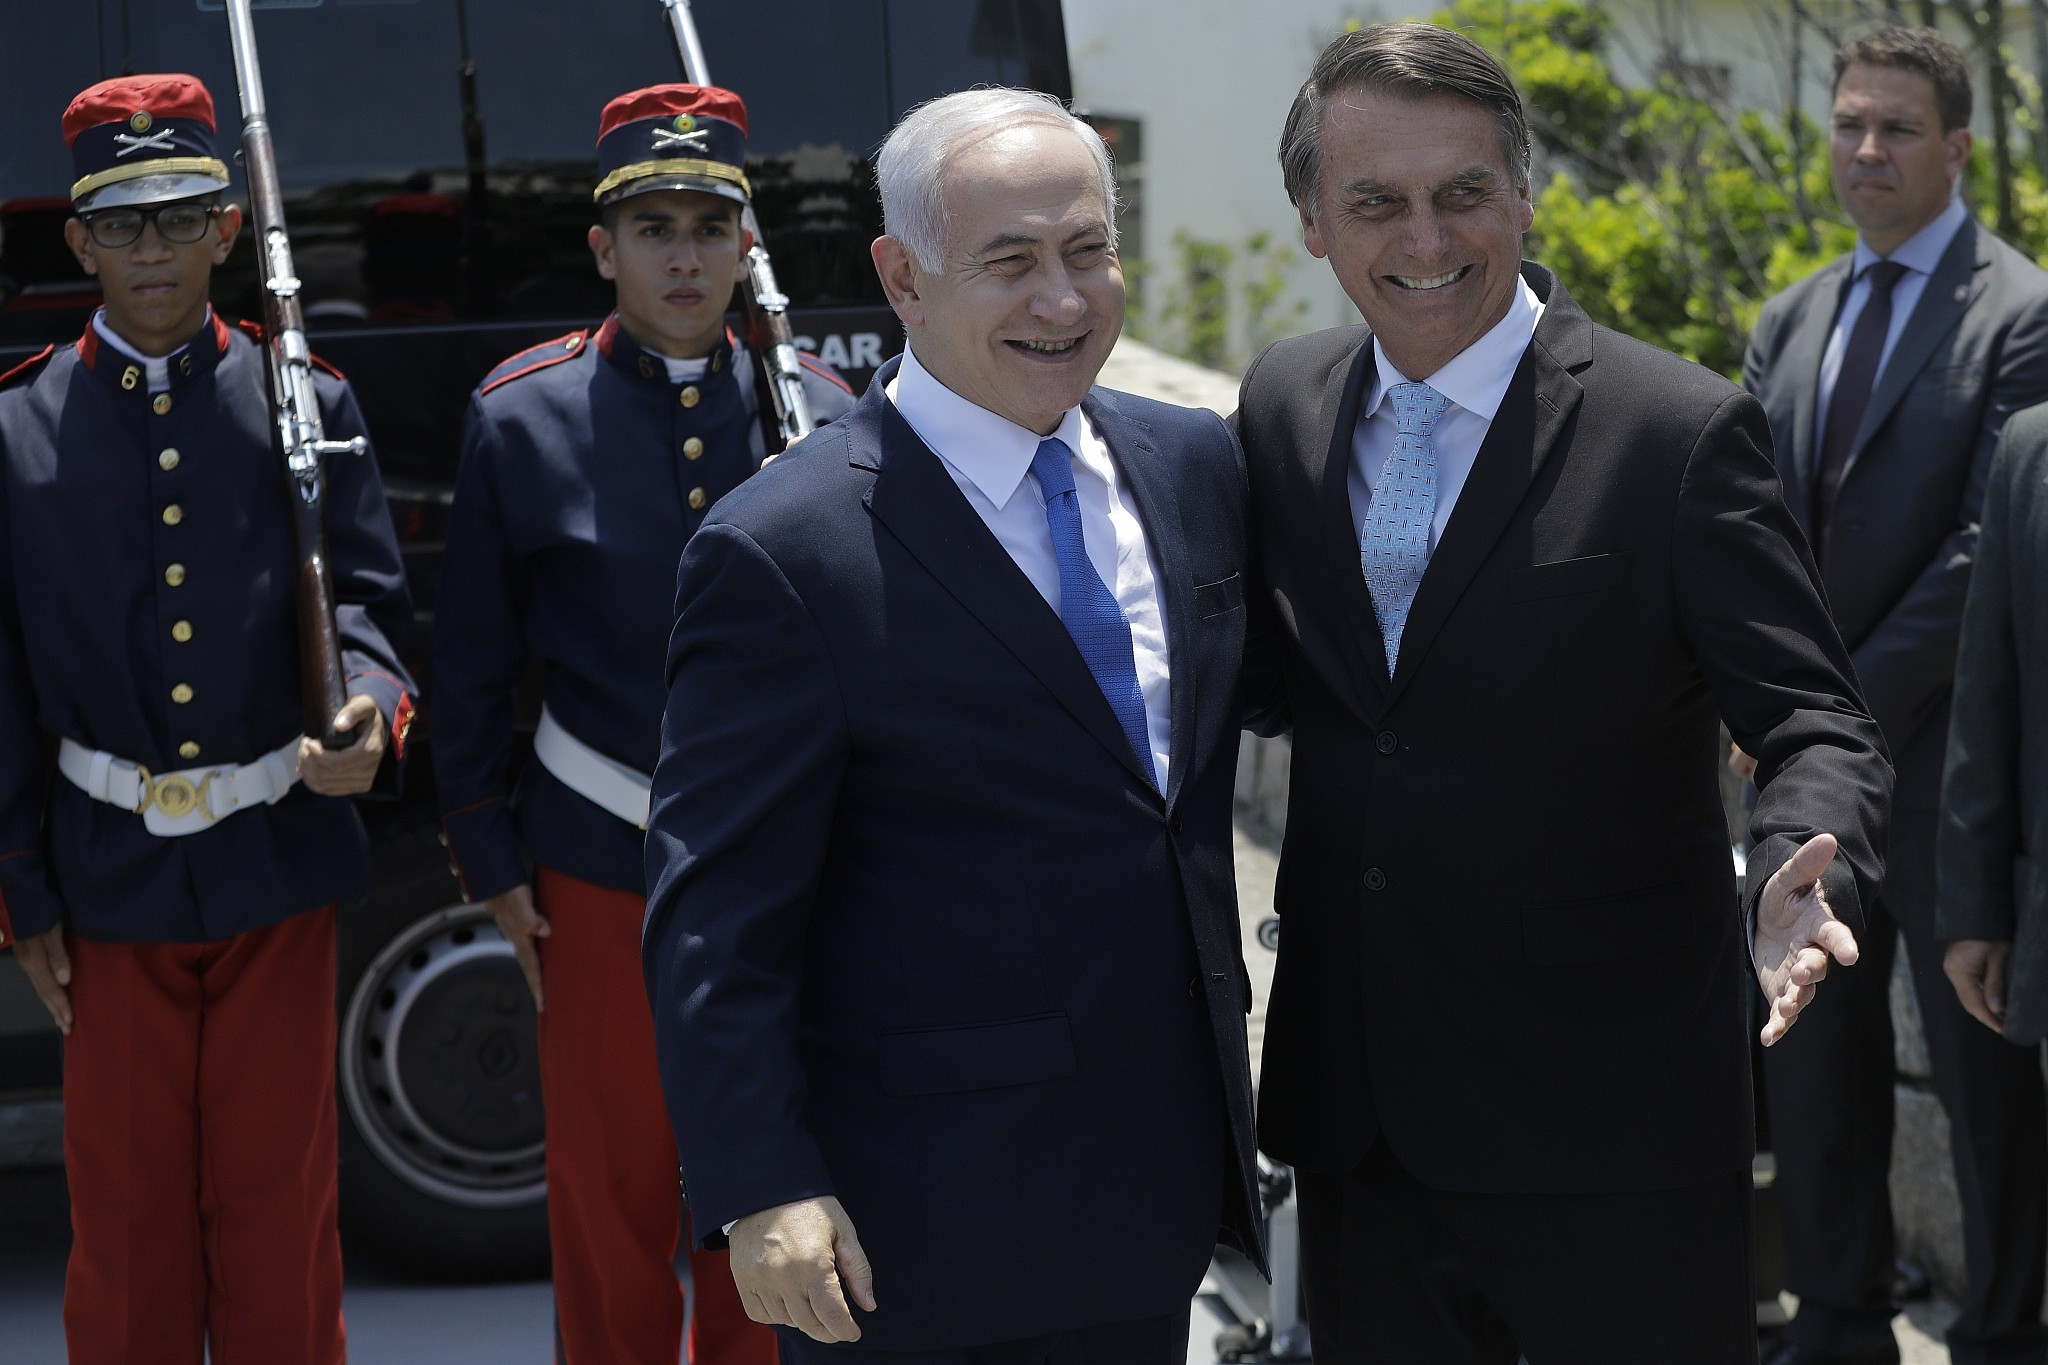 Benjamin Netanyahu during the investiture of President Bolsonaro. Israel has taken position in Brazil.